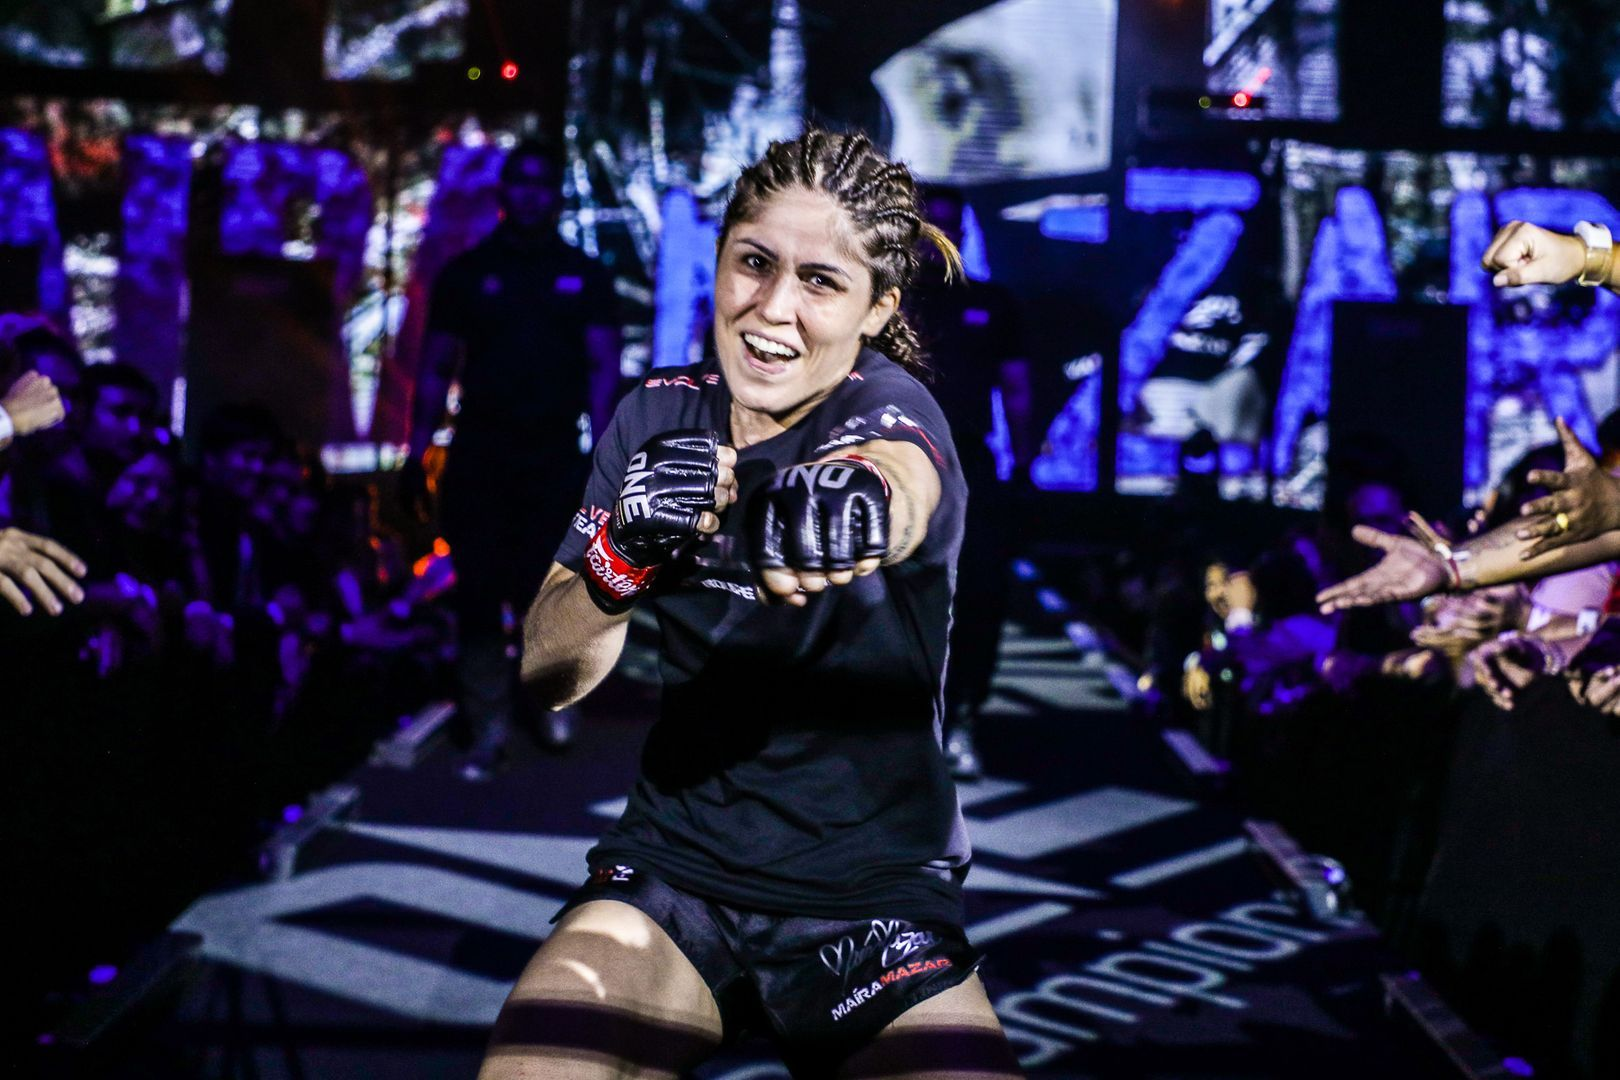 Brazilian MMA fighter Maira Mazar throws a punch on her way to the cage